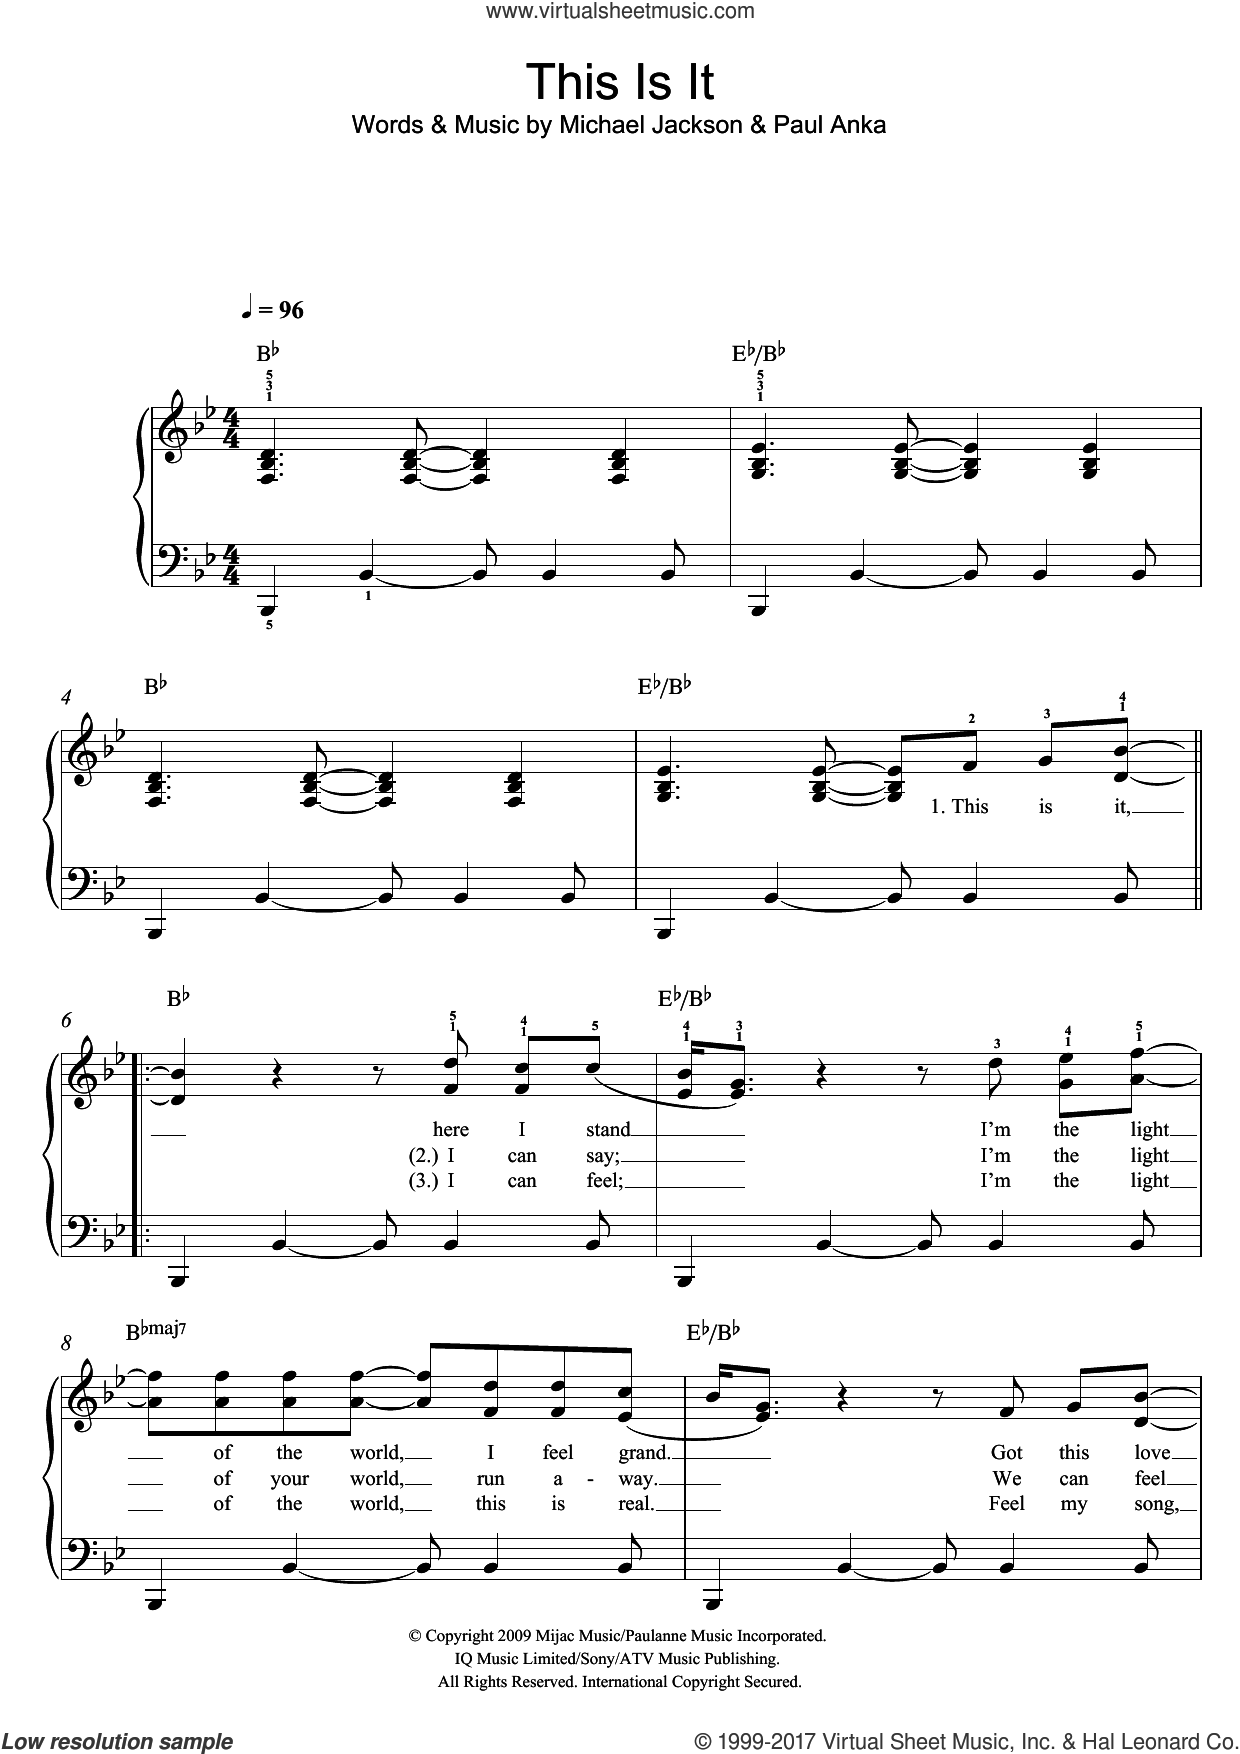 This Is It sheet music for piano solo by Michael Jackson and Paul Anka, easy skill level